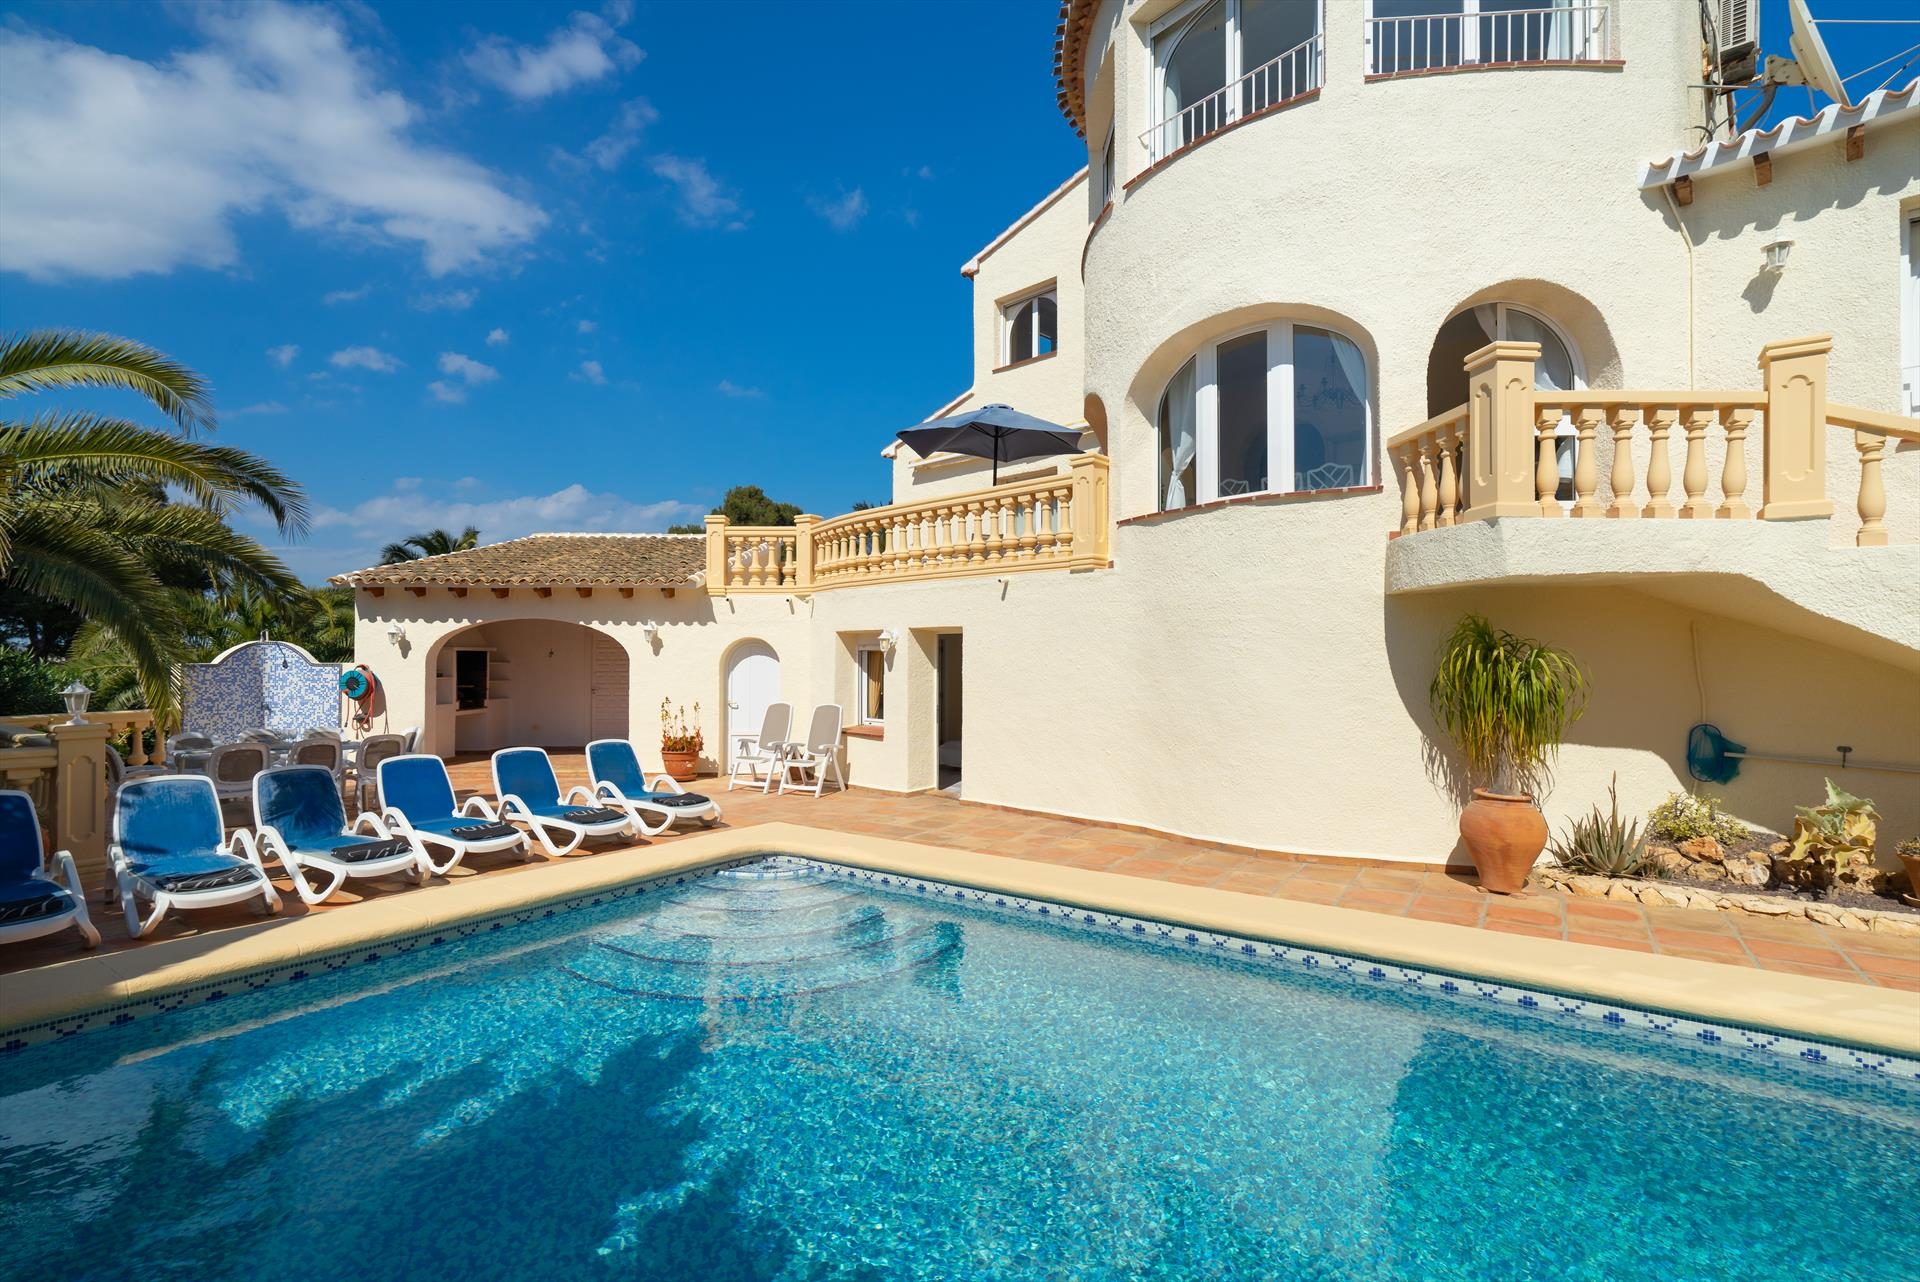 Villa Hermosa 6 pax, Classic and comfortable villa in Javea, on the Costa Blanca, Spain  with private pool for 6 persons.....